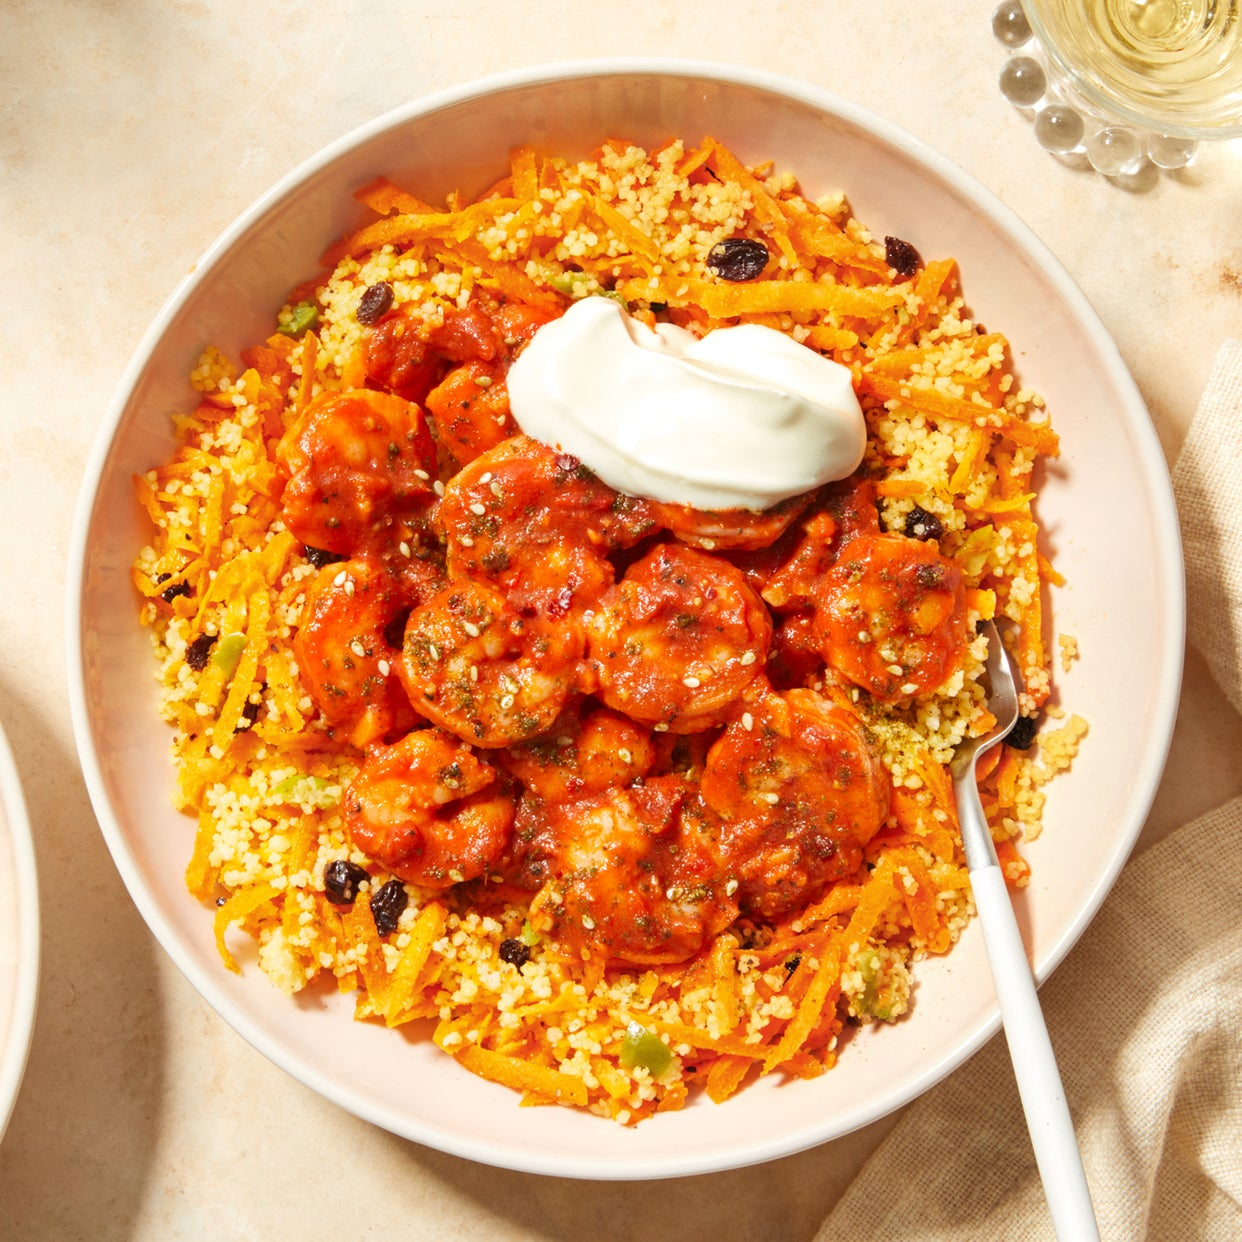 Shrimp in Smoky Harissa Sauce with Couscous, Olives, & Currants